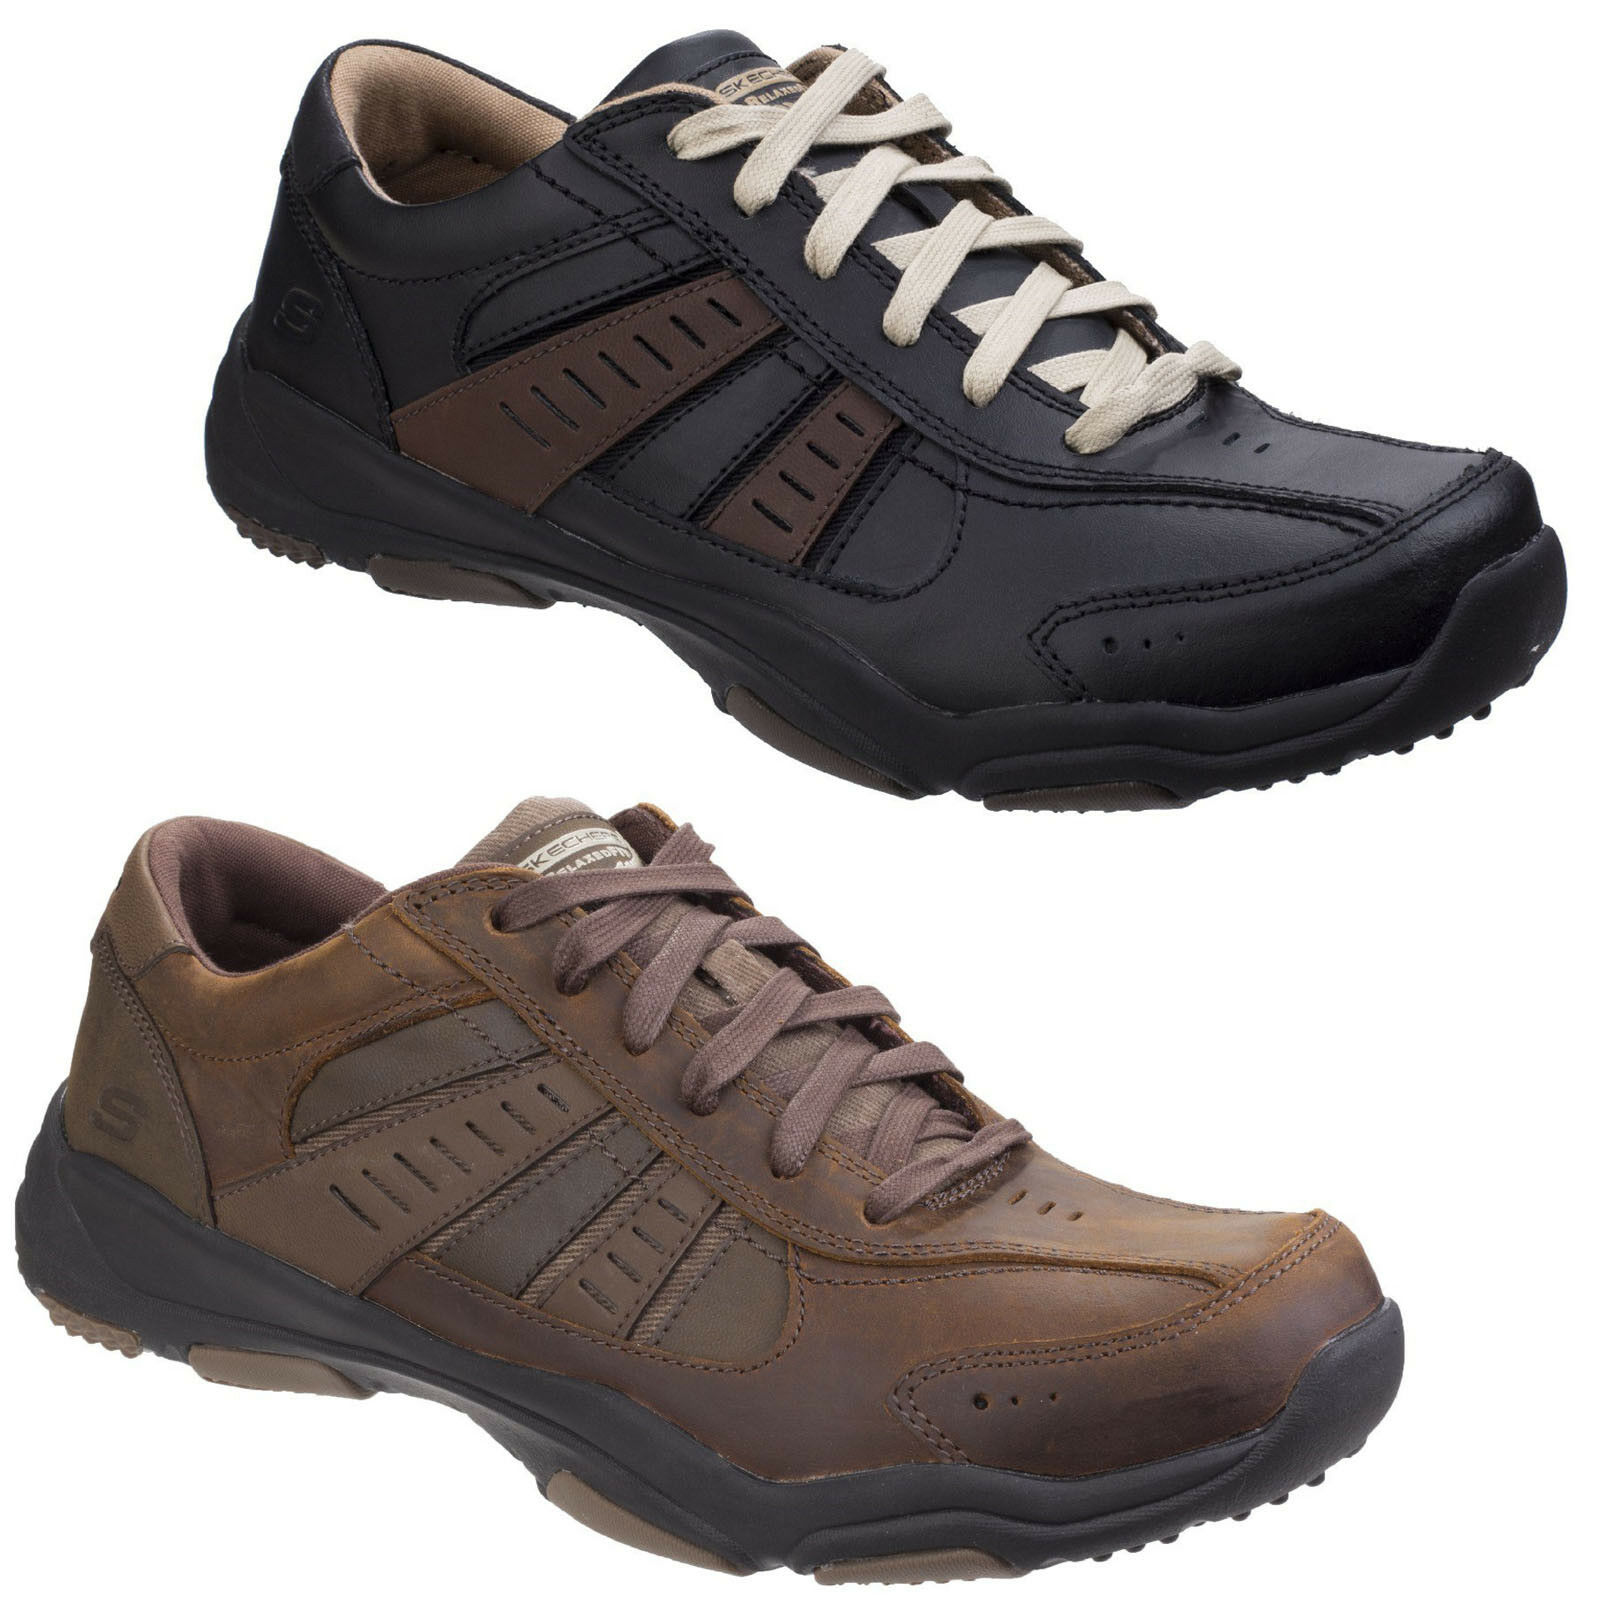 Skechers Larson Nerick Trainers Casual Leather Memory Foam Lace Up Shoes Mens